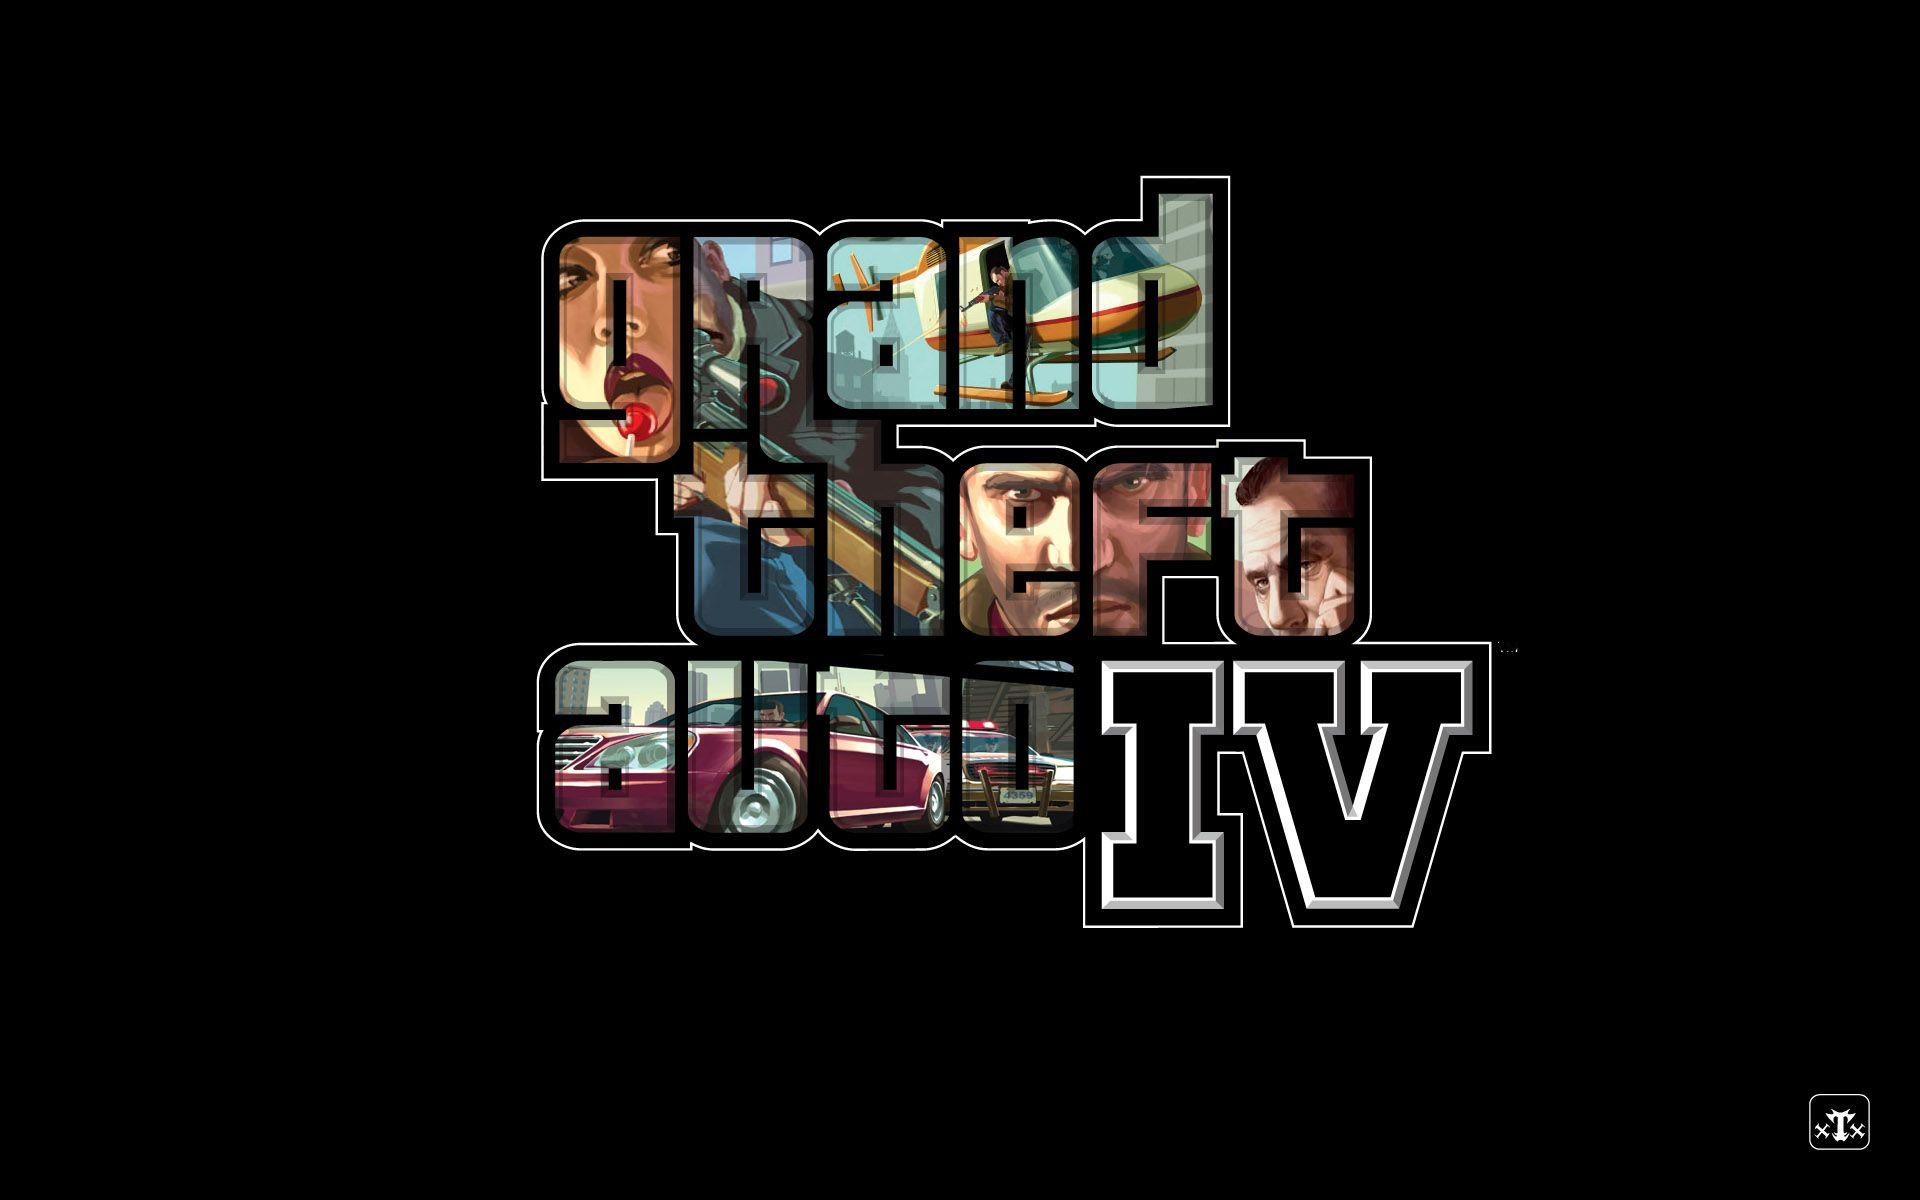 Grand Theft Auto IV Wallpapers